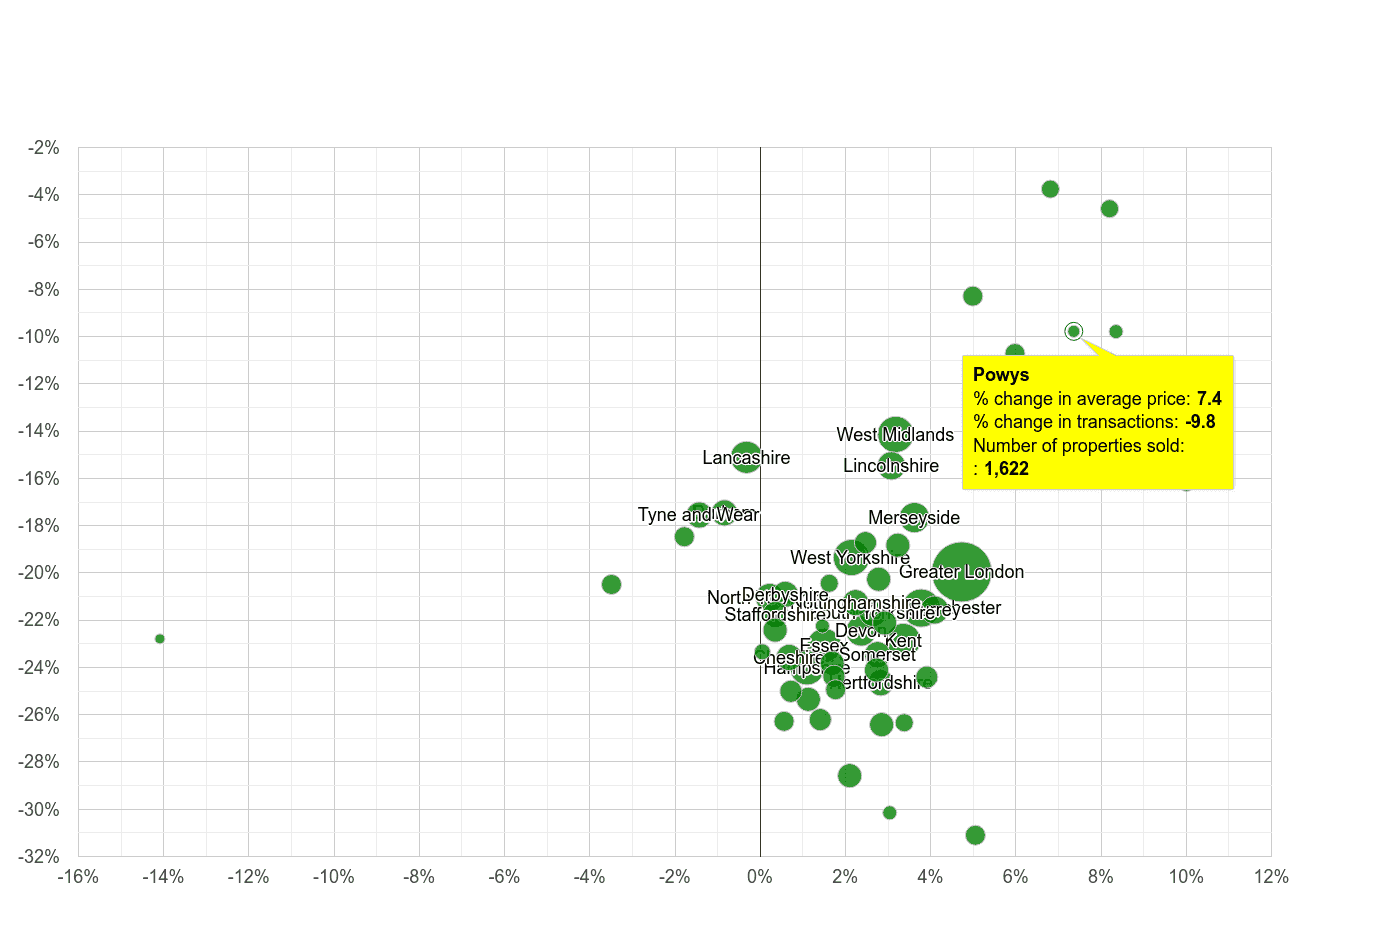 Powys property price and sales volume change relative to other counties